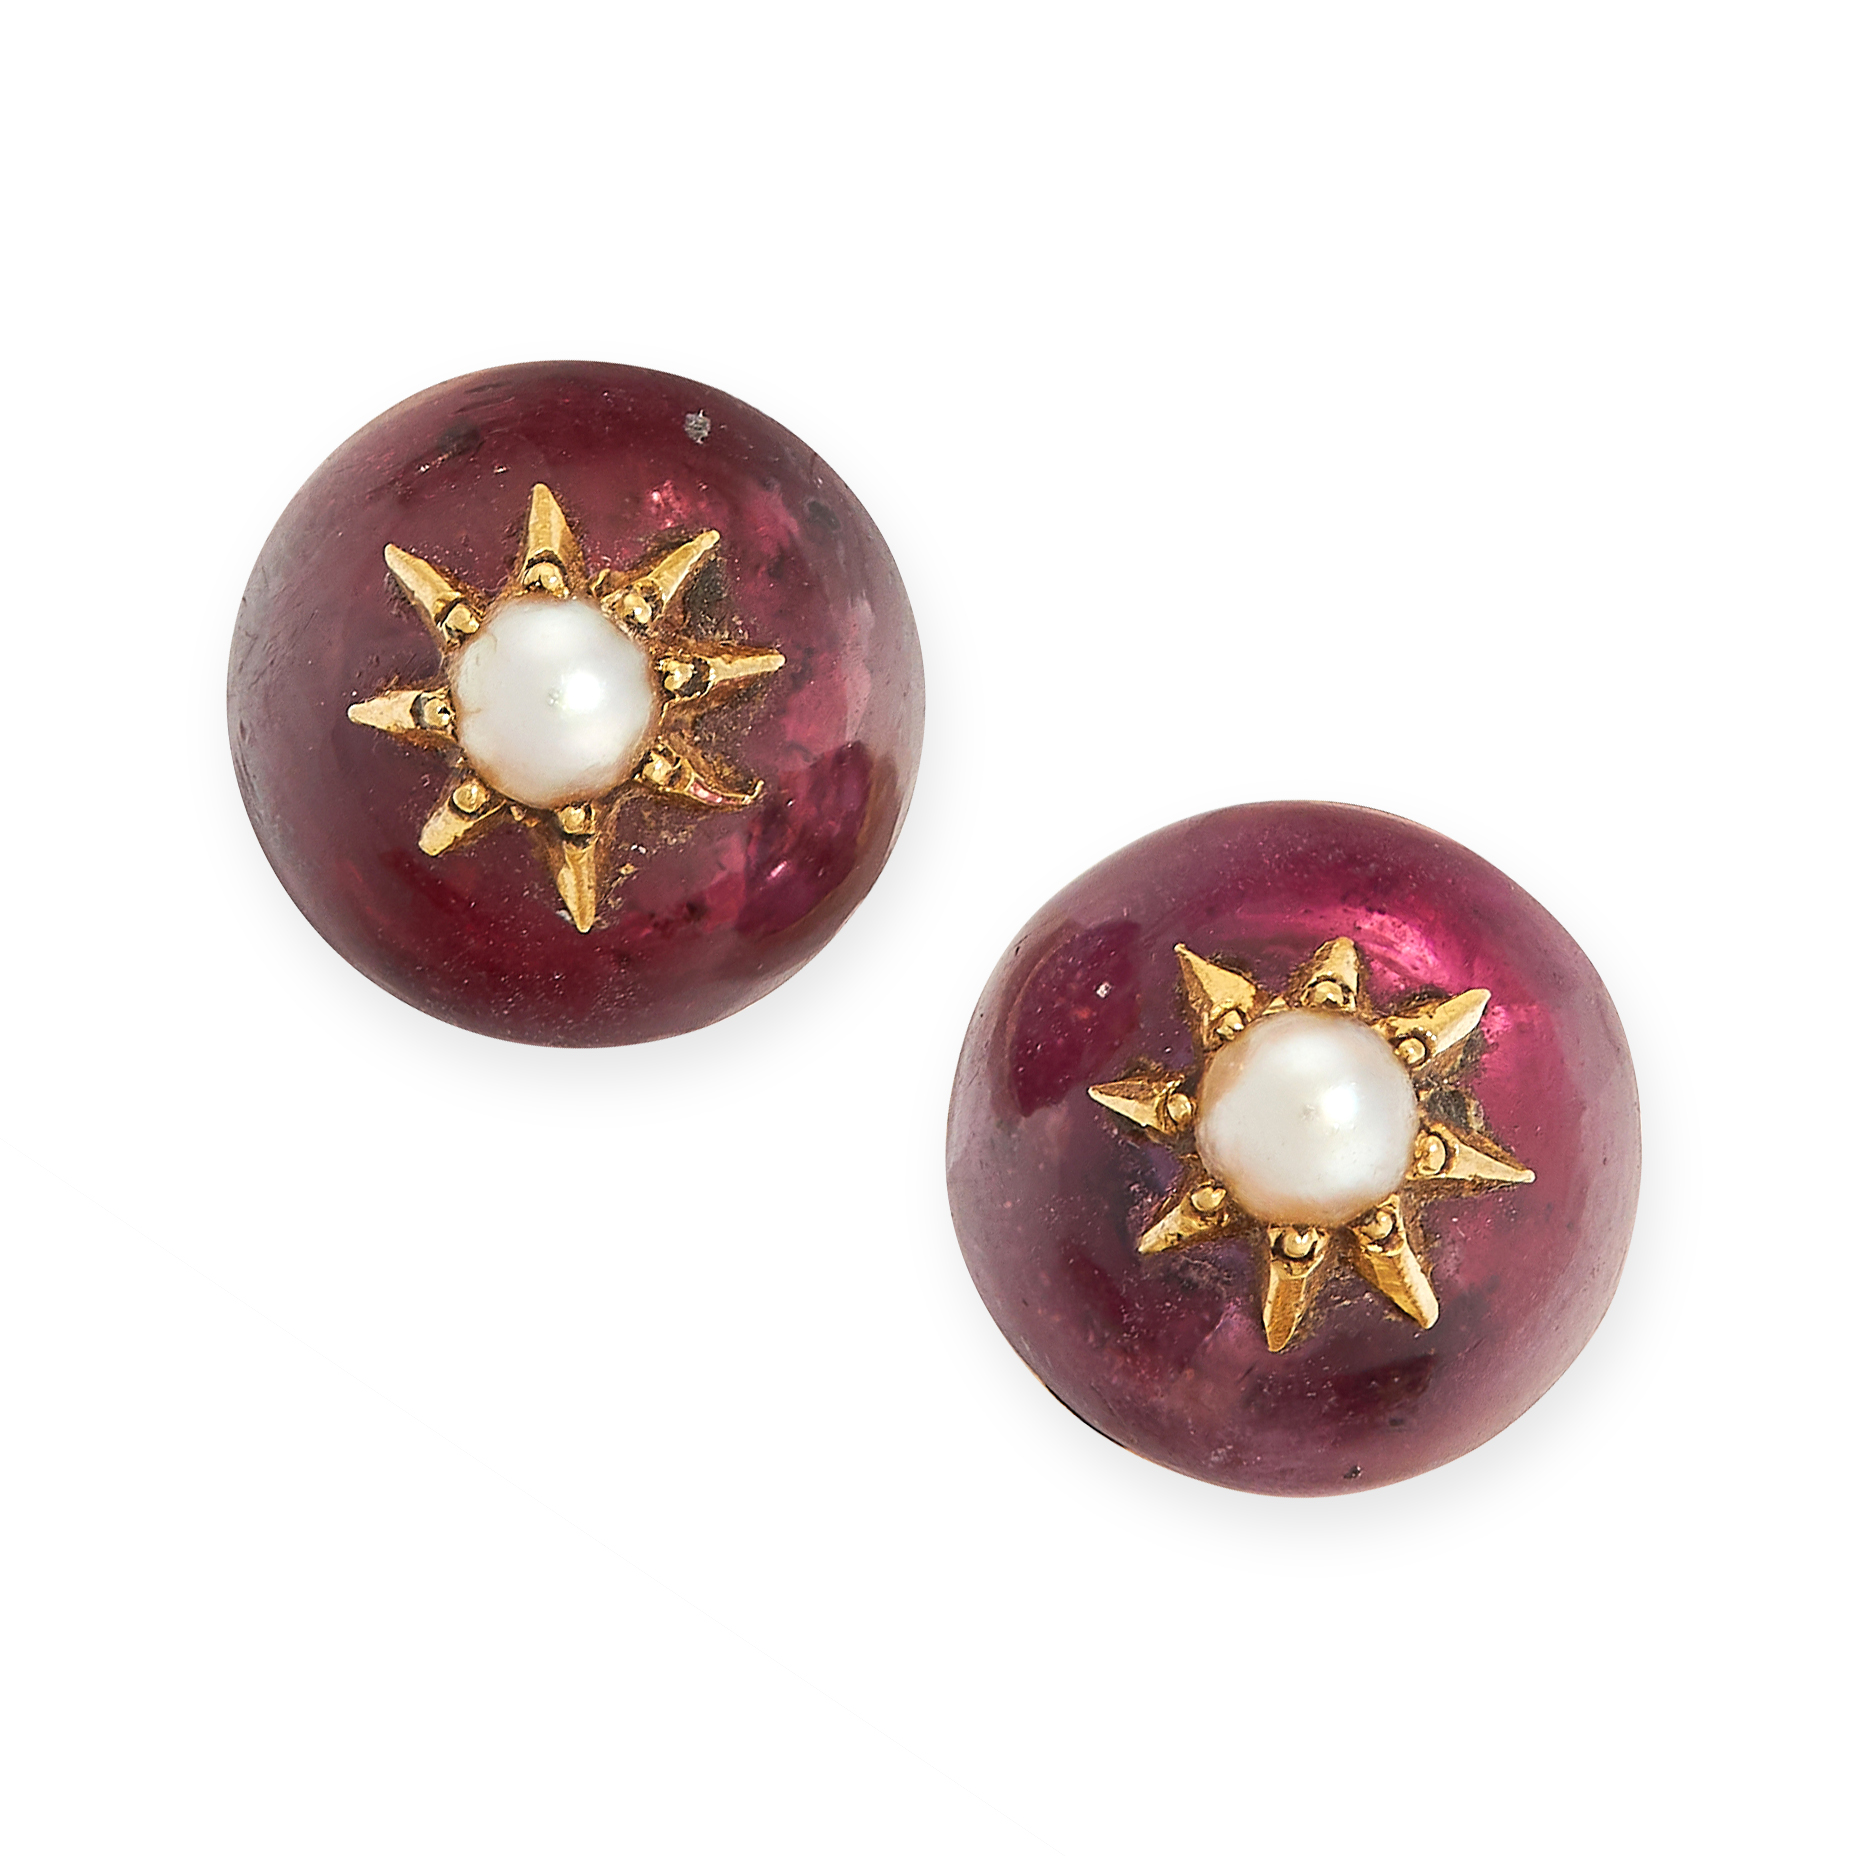 ANTIQUE FOILED AMETHYST AND PEARL STUD EARRINGS in yellow gold, comprising of a seed pearl in star